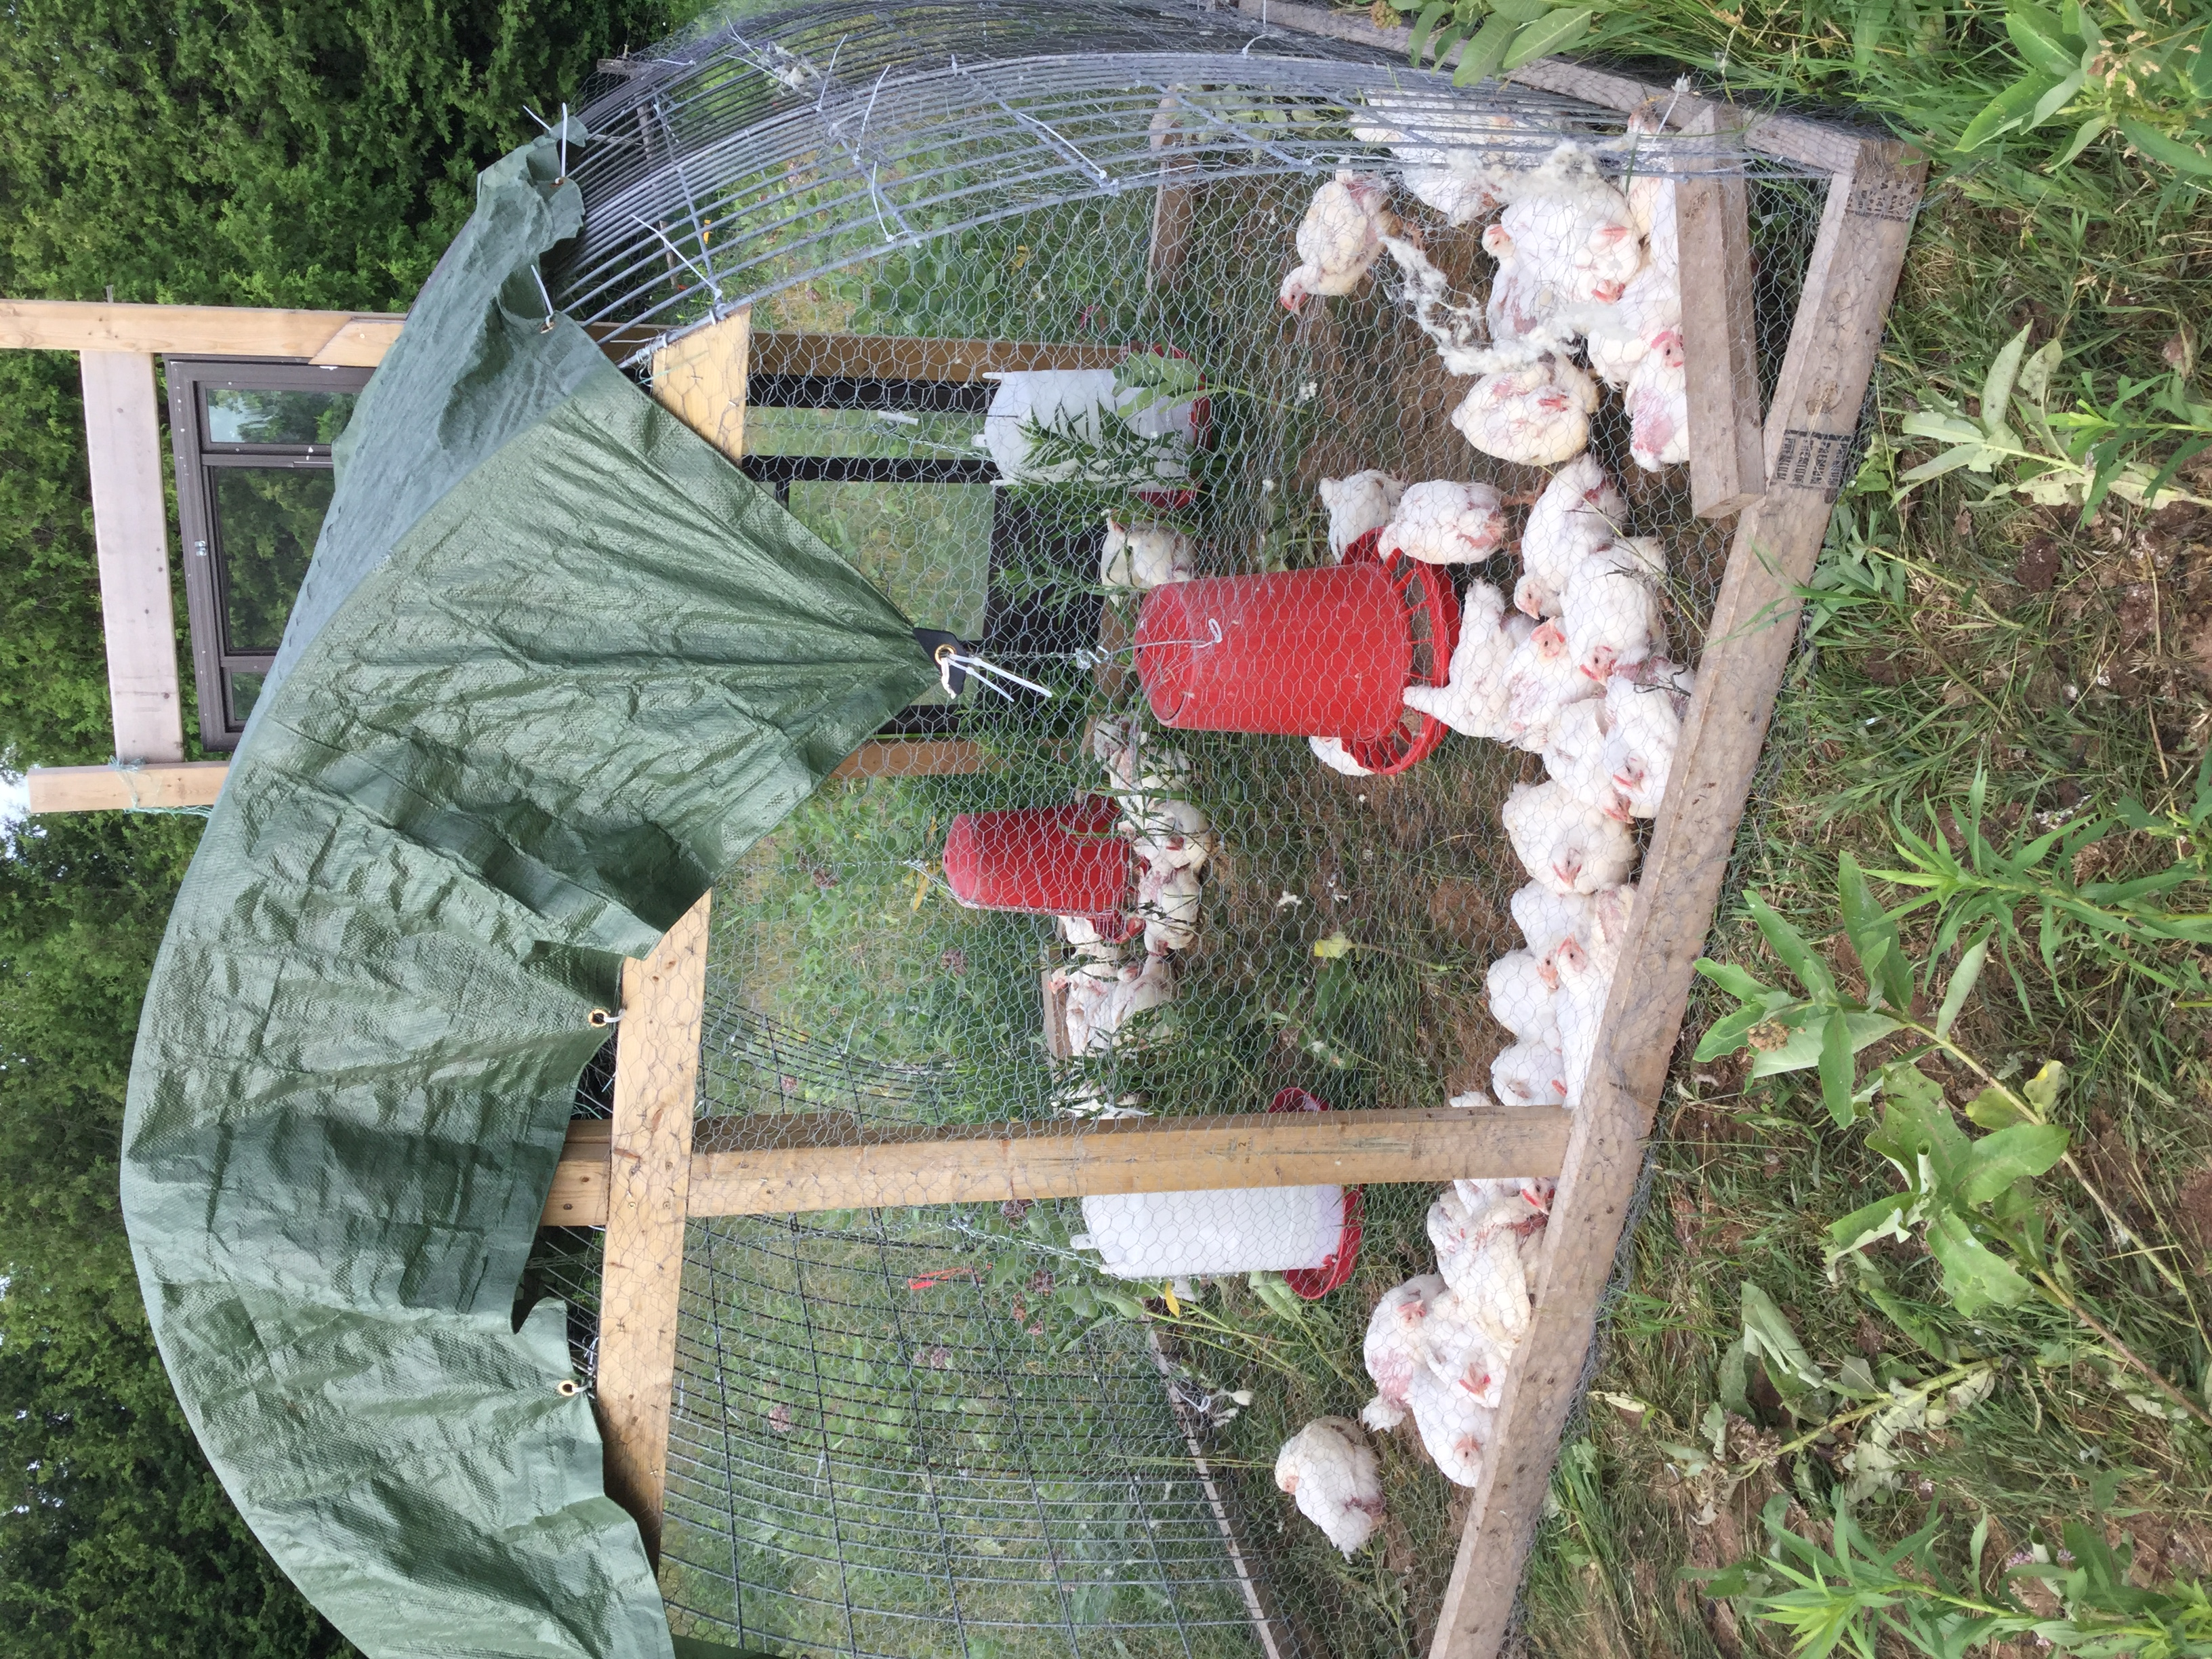 White Rocks/ Chicken Tractor